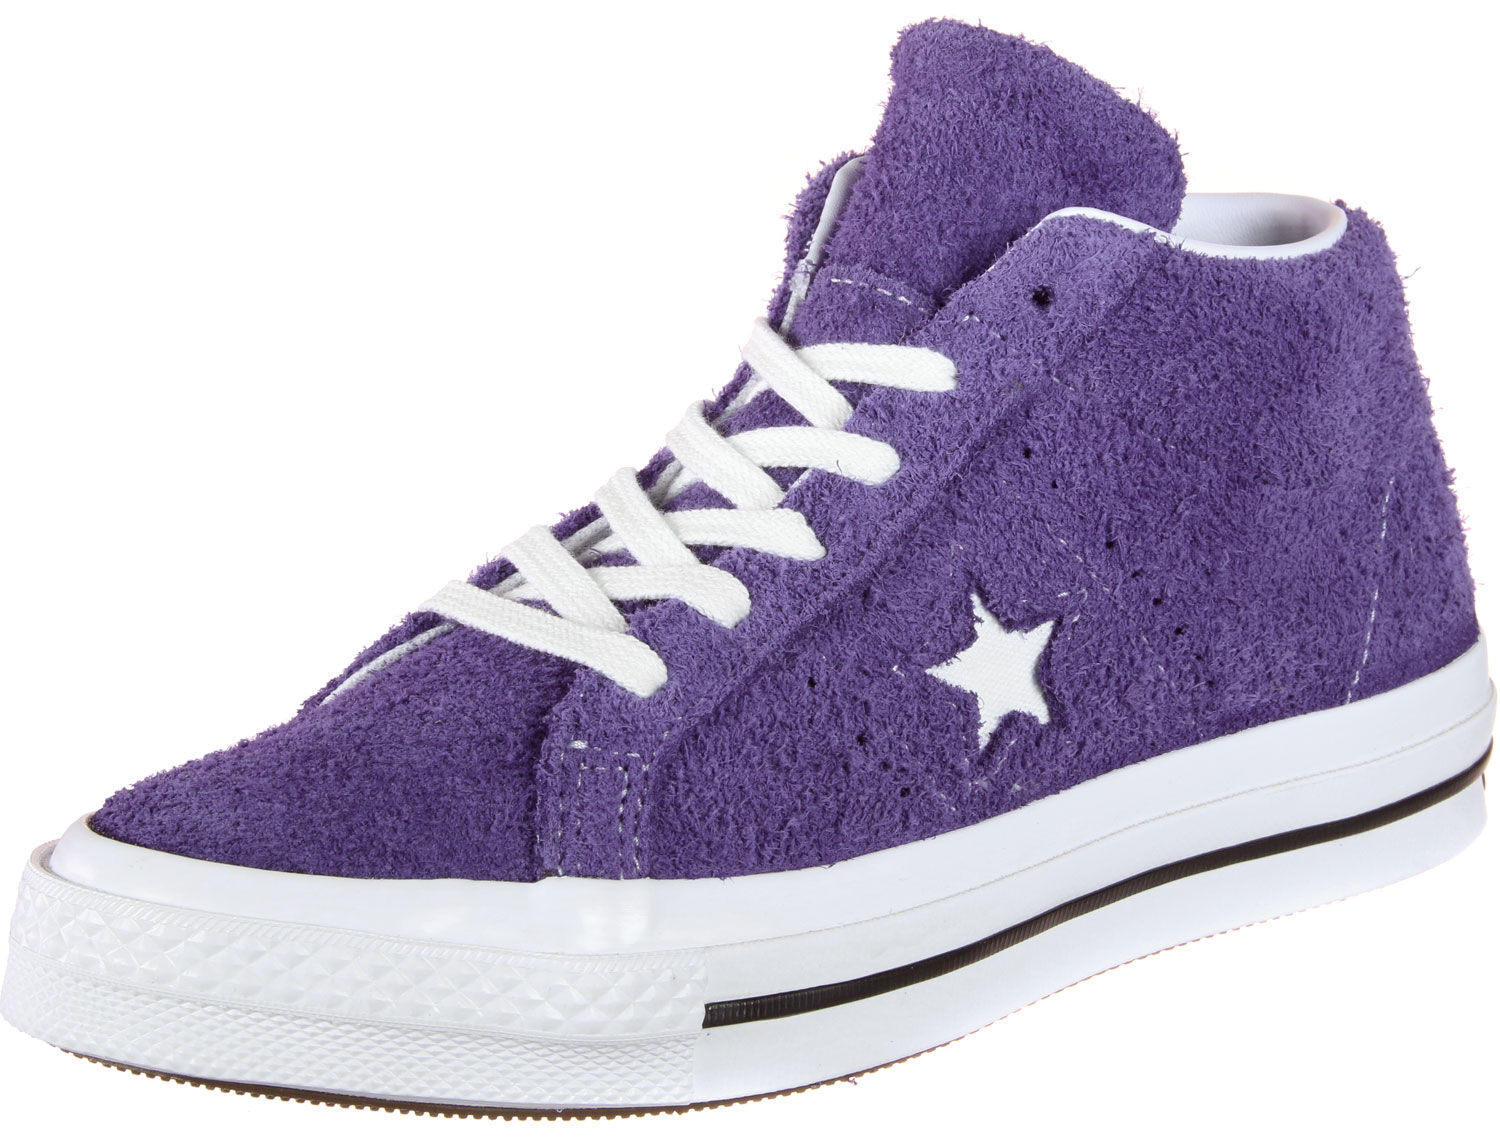 Converse One Star Mid - Sneakers High